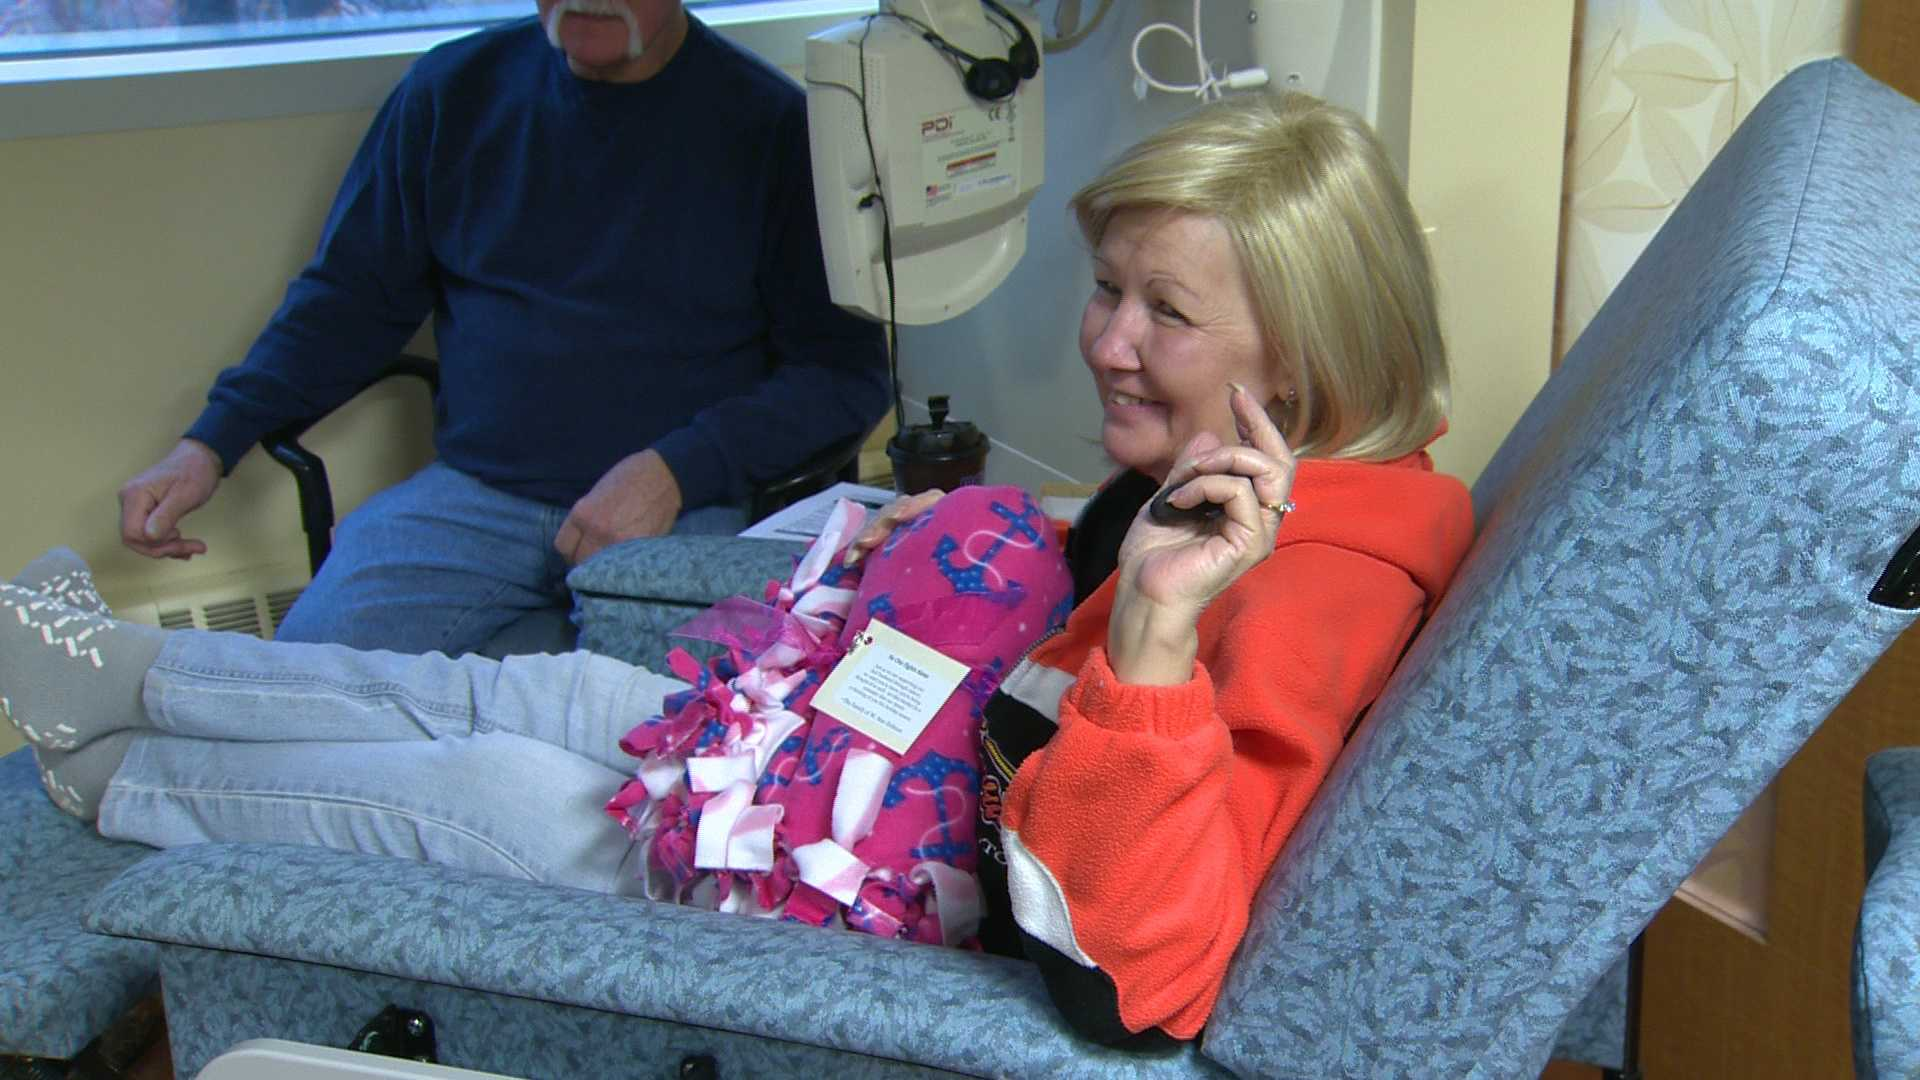 A chemo patient gets her homemade blanket.